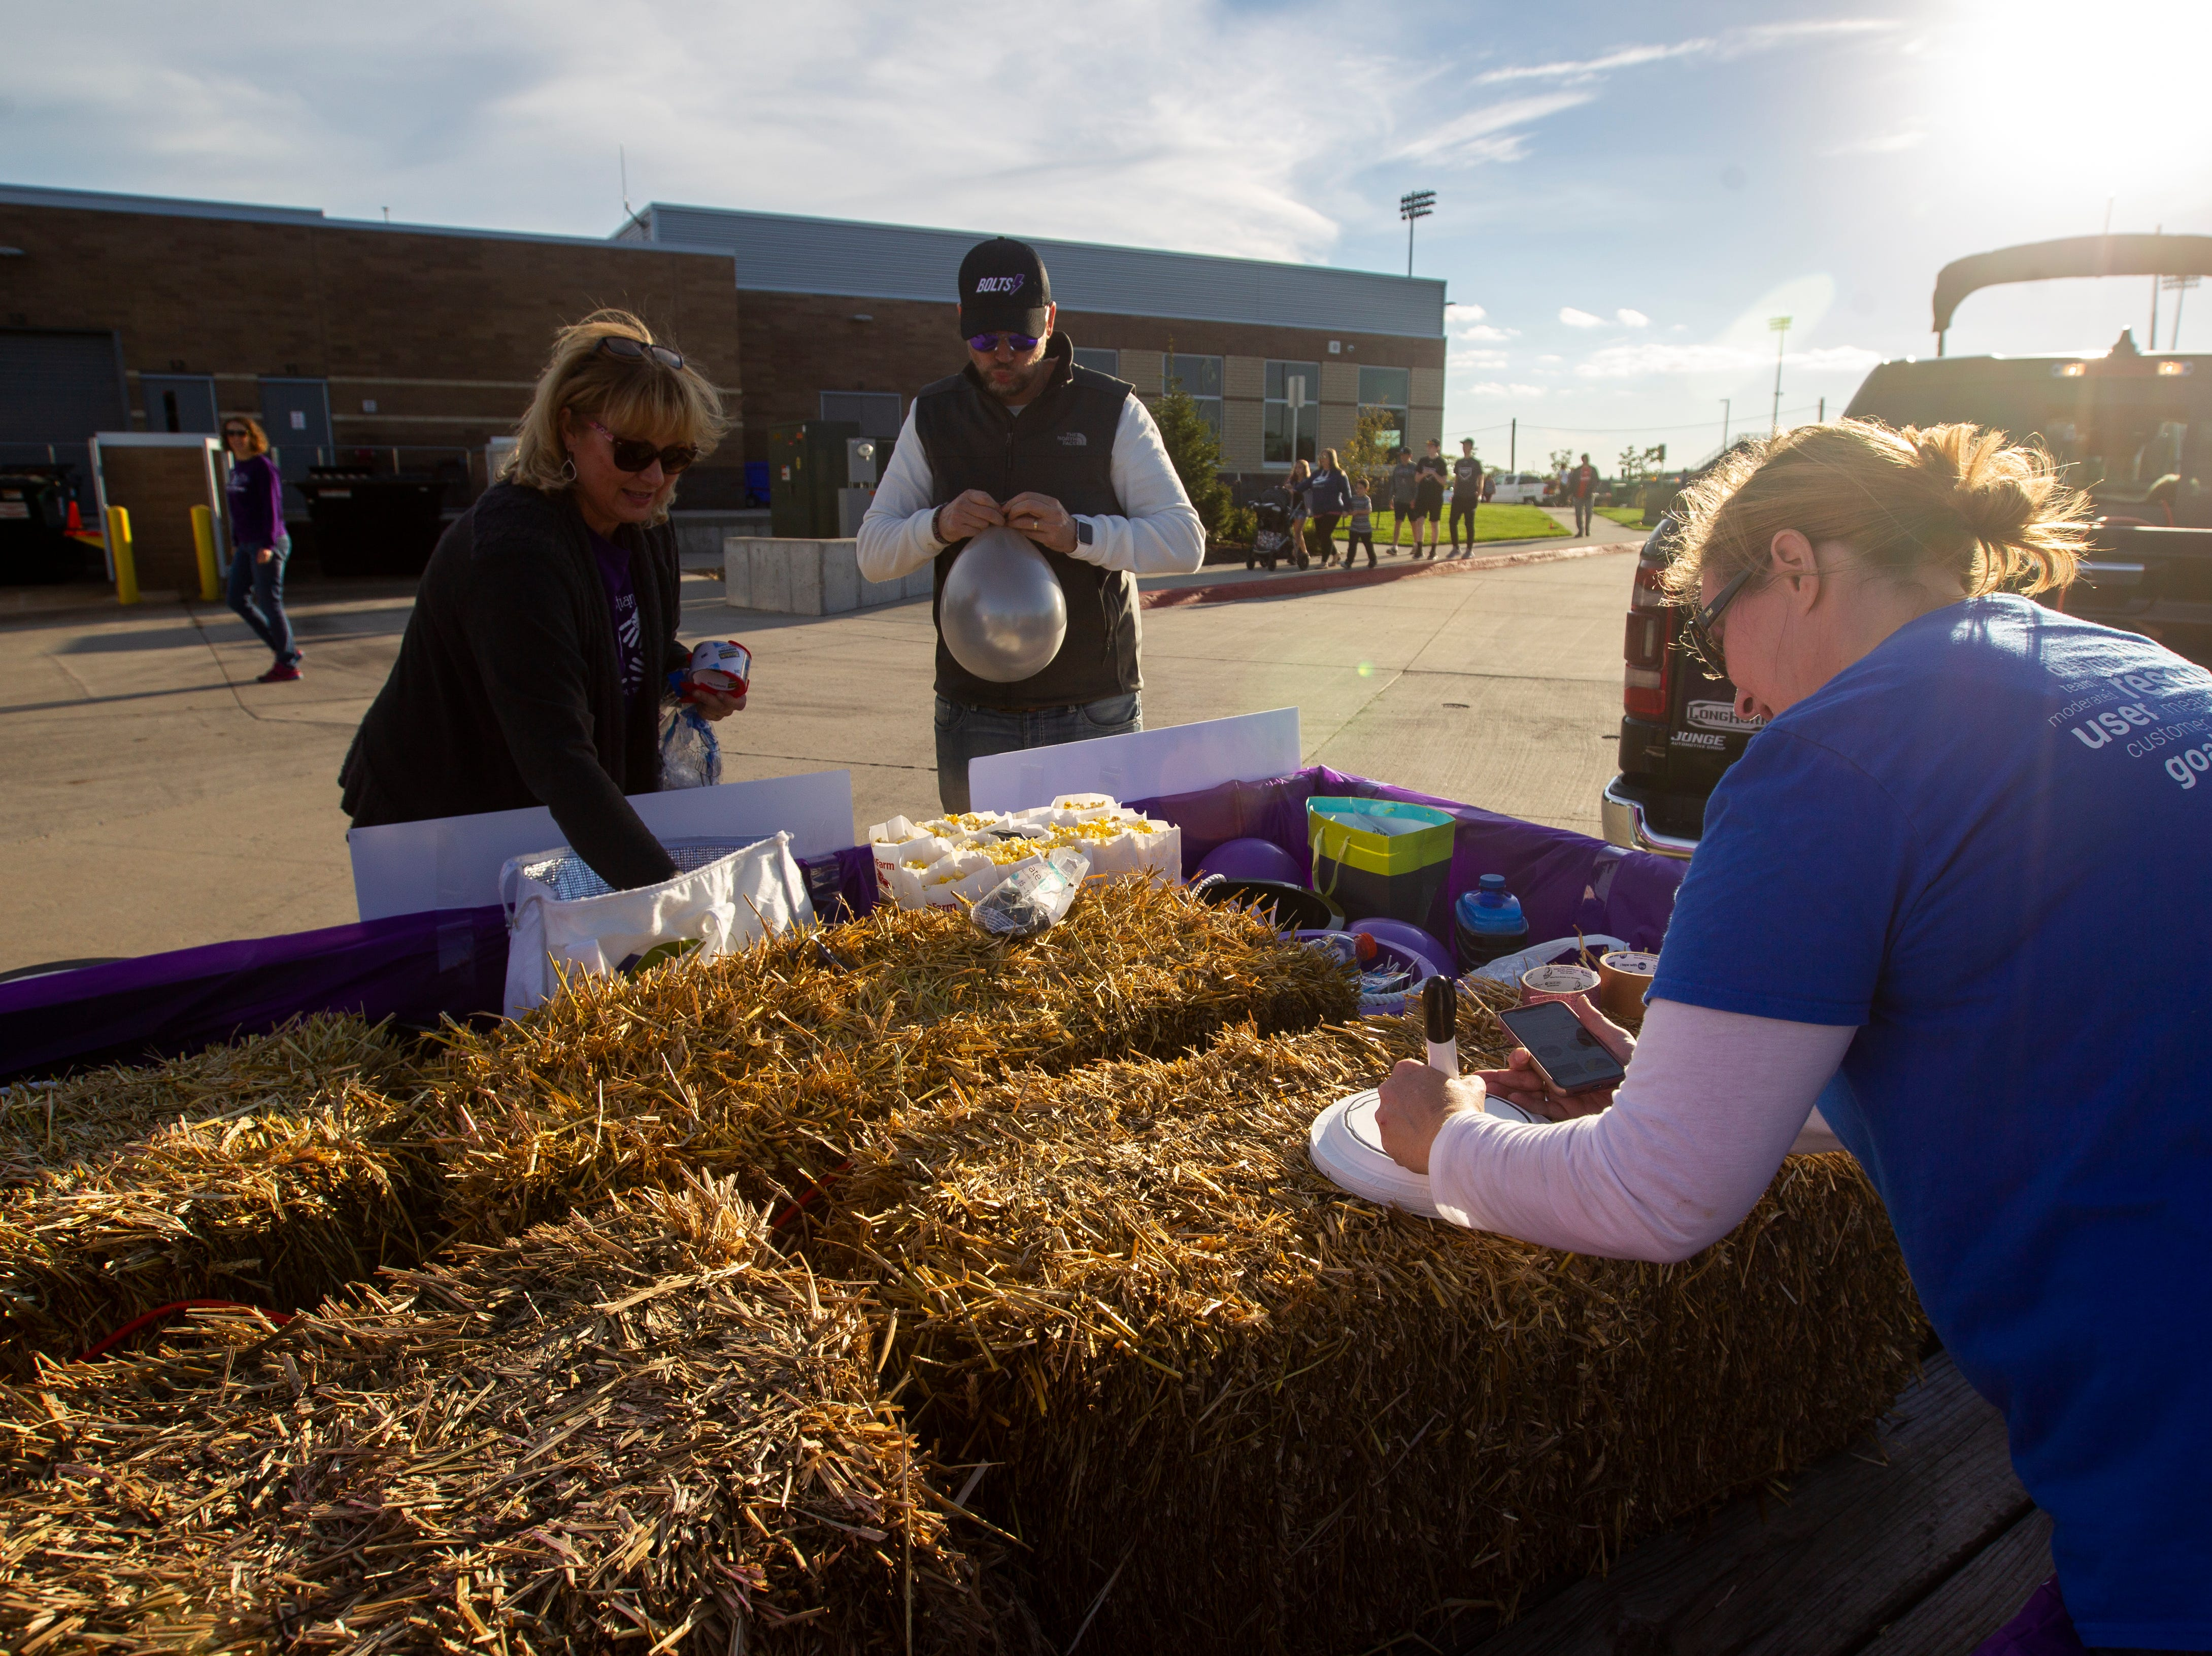 Liberty volleyball parents Lisa Potter (from left) Ryan Harvey, and Liz Harvey get ready during Liberty's homecoming parade on Wednesday, Sept. 26, 2018, in North Liberty, Iowa.